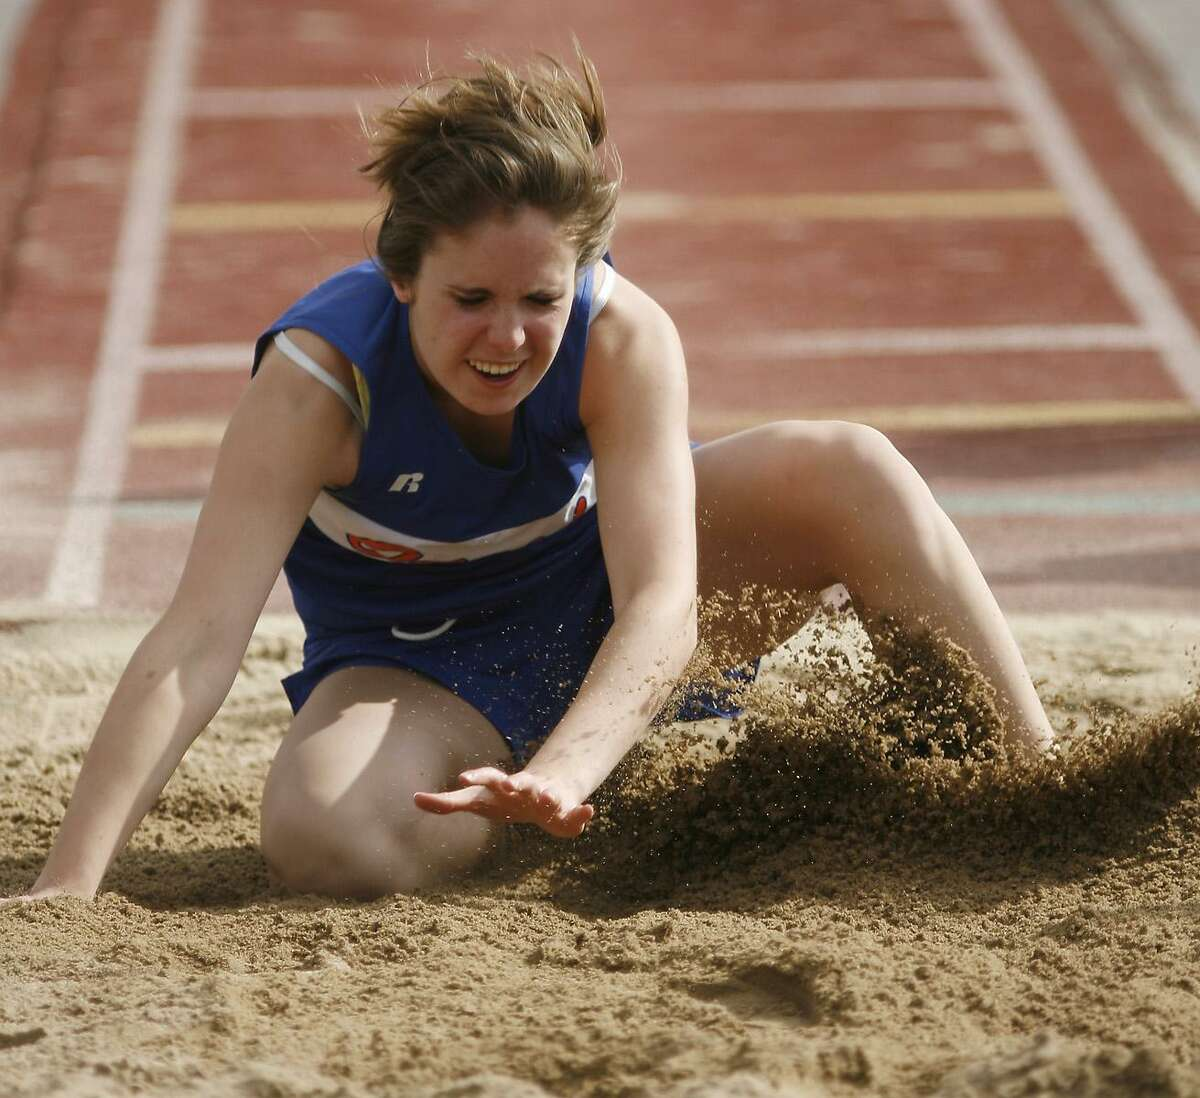 Dispatch Staff Photo by JOHN HAEGER Oneida's Erica Vaccaro lands in the long jump pit during the Oneida Invitational on May 6, 2011 in Oneida.